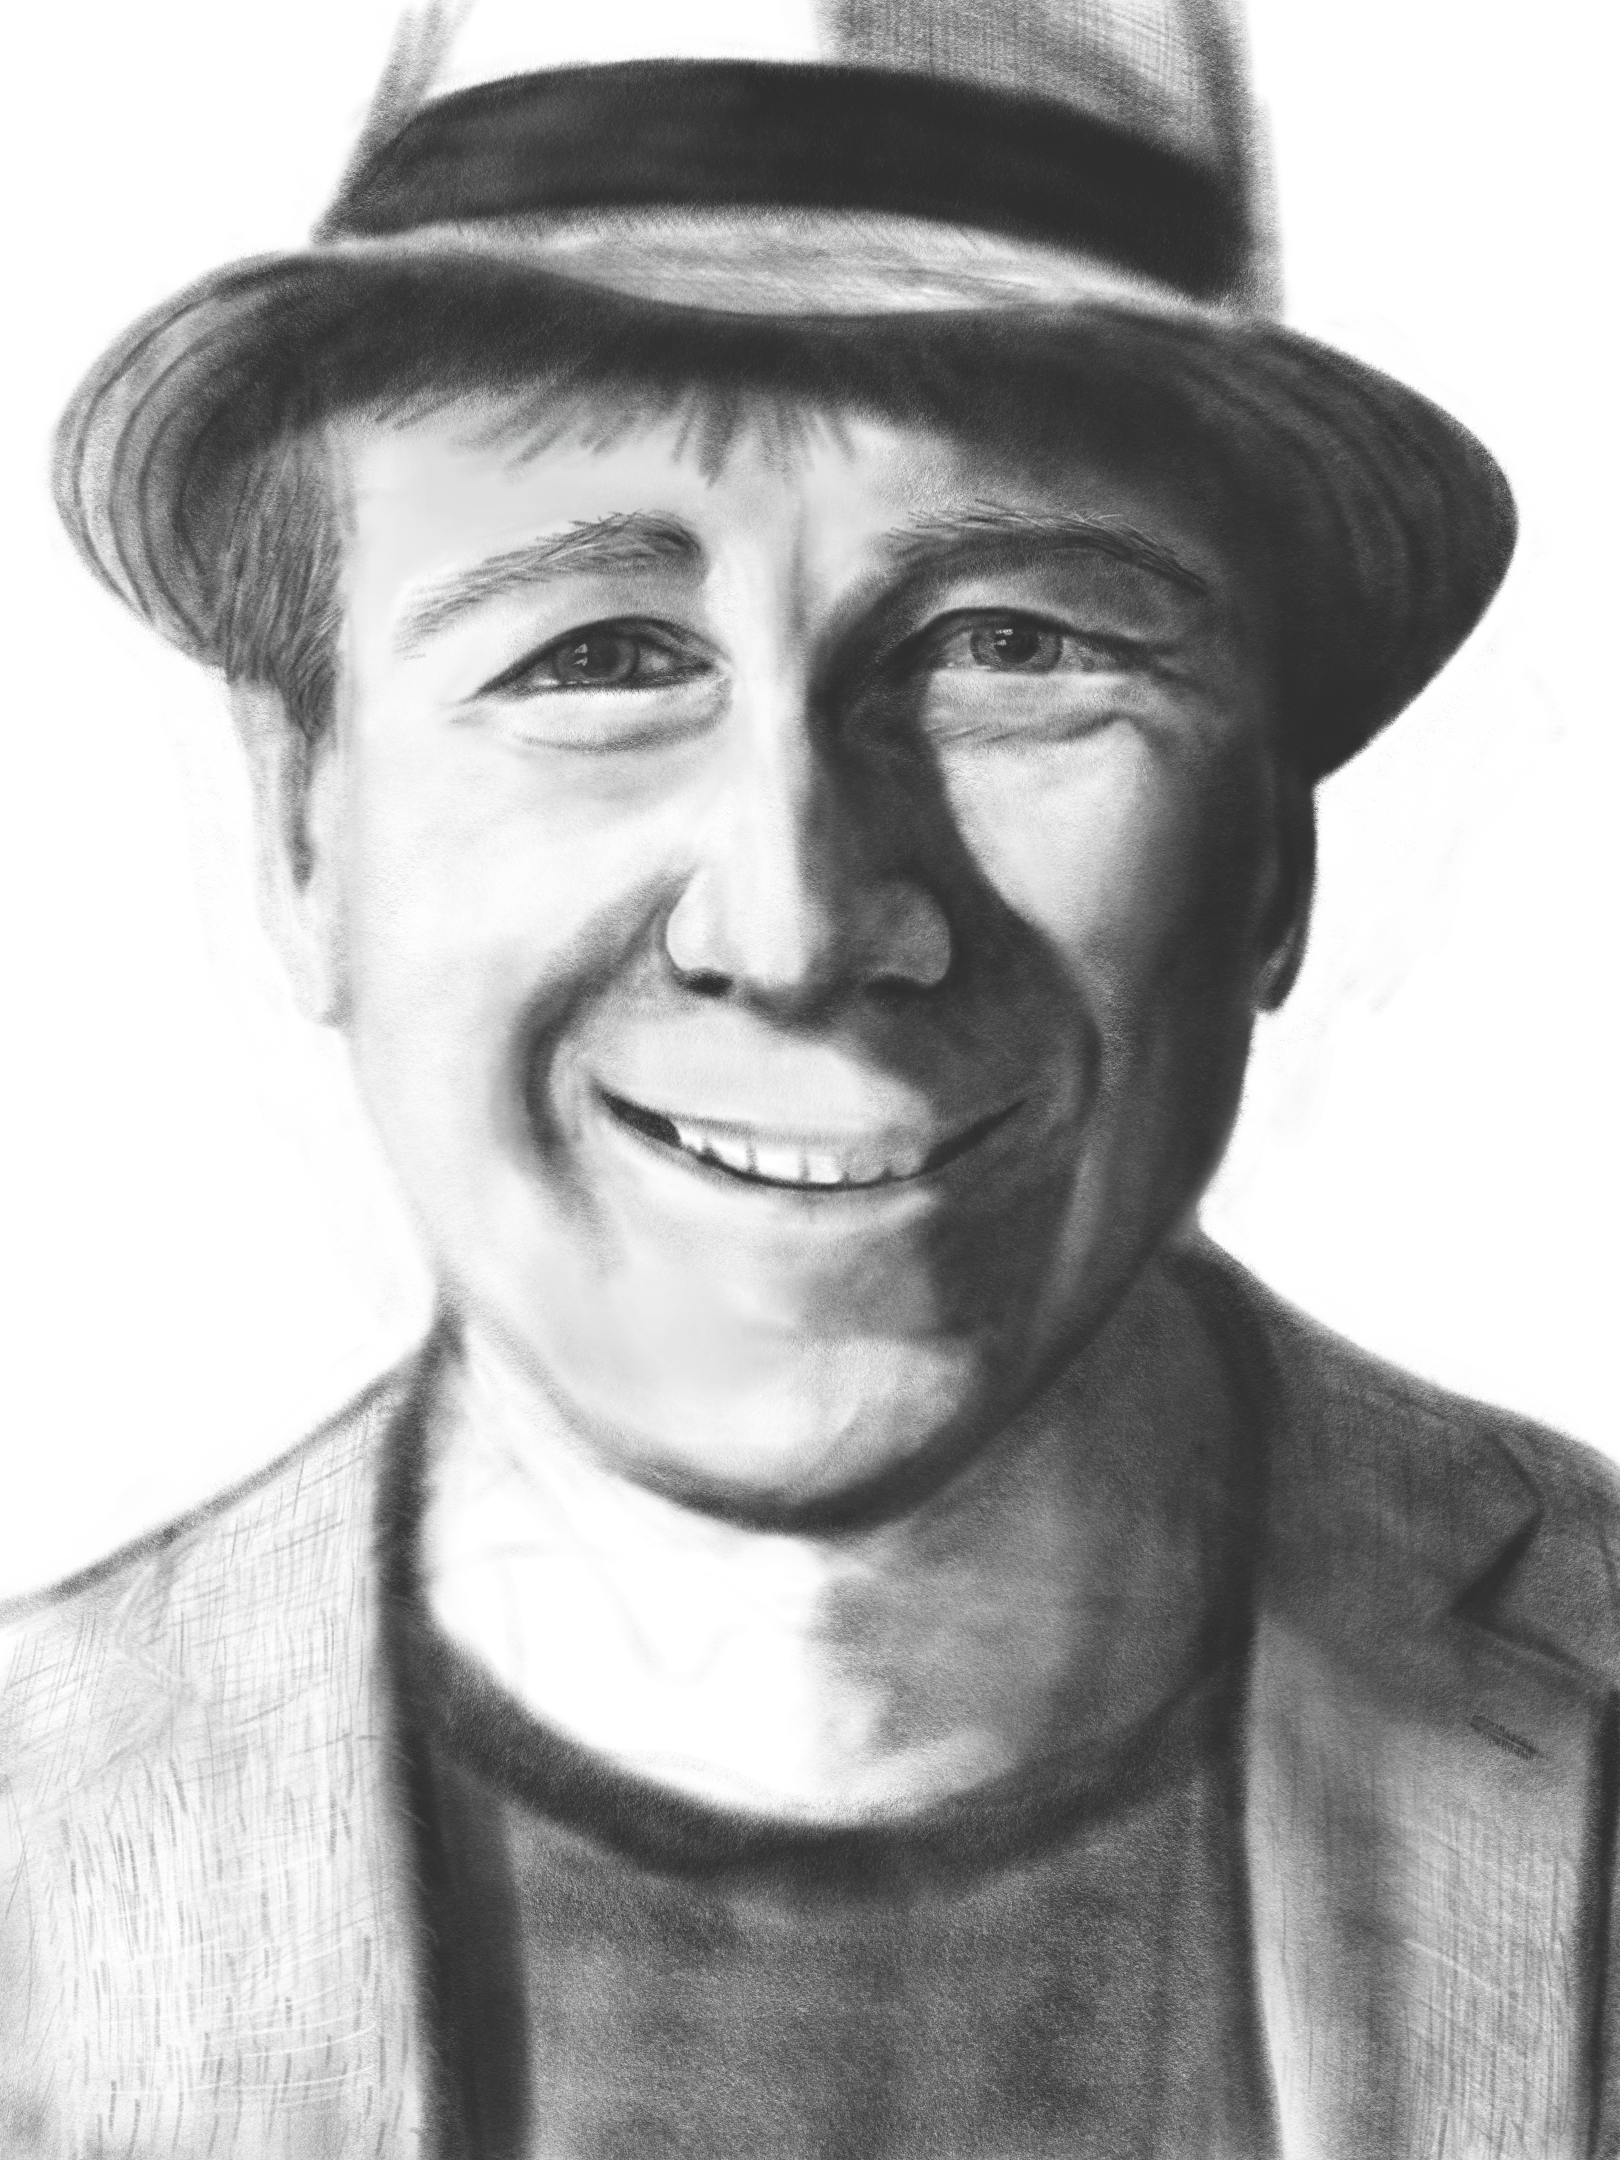 Charcoal Sketch of me